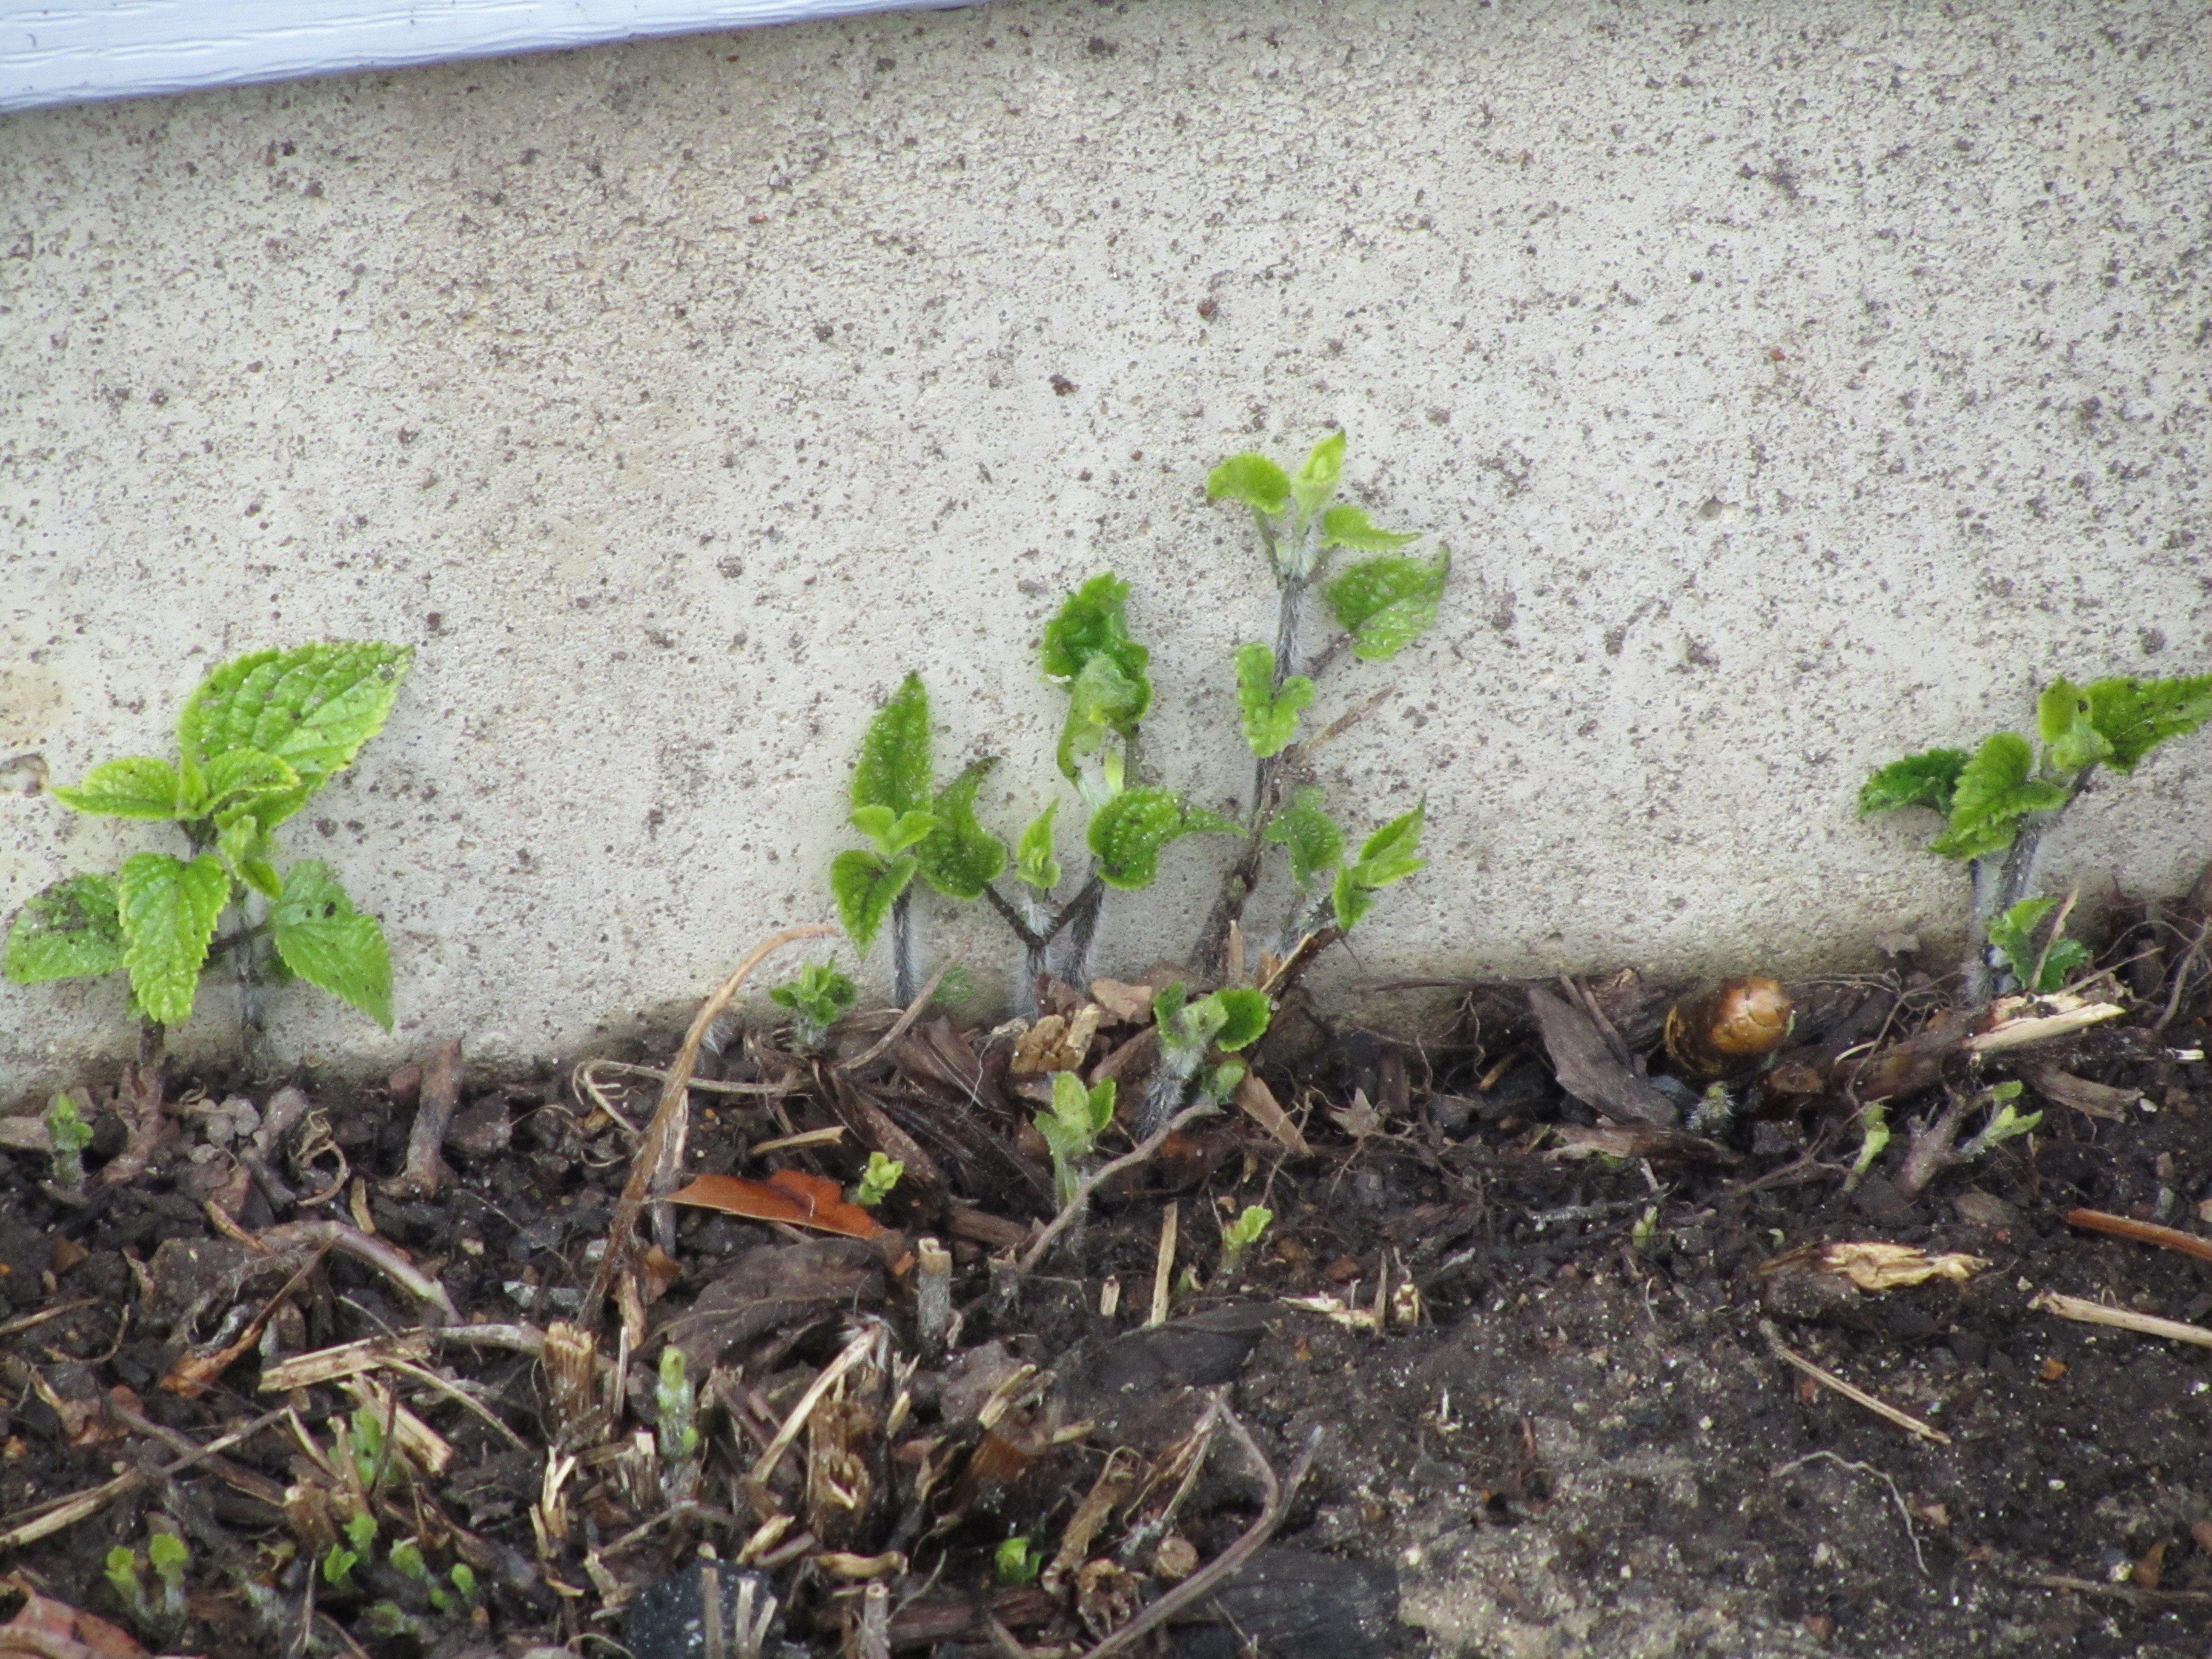 learned is that with some plants if you plant them next to a basement